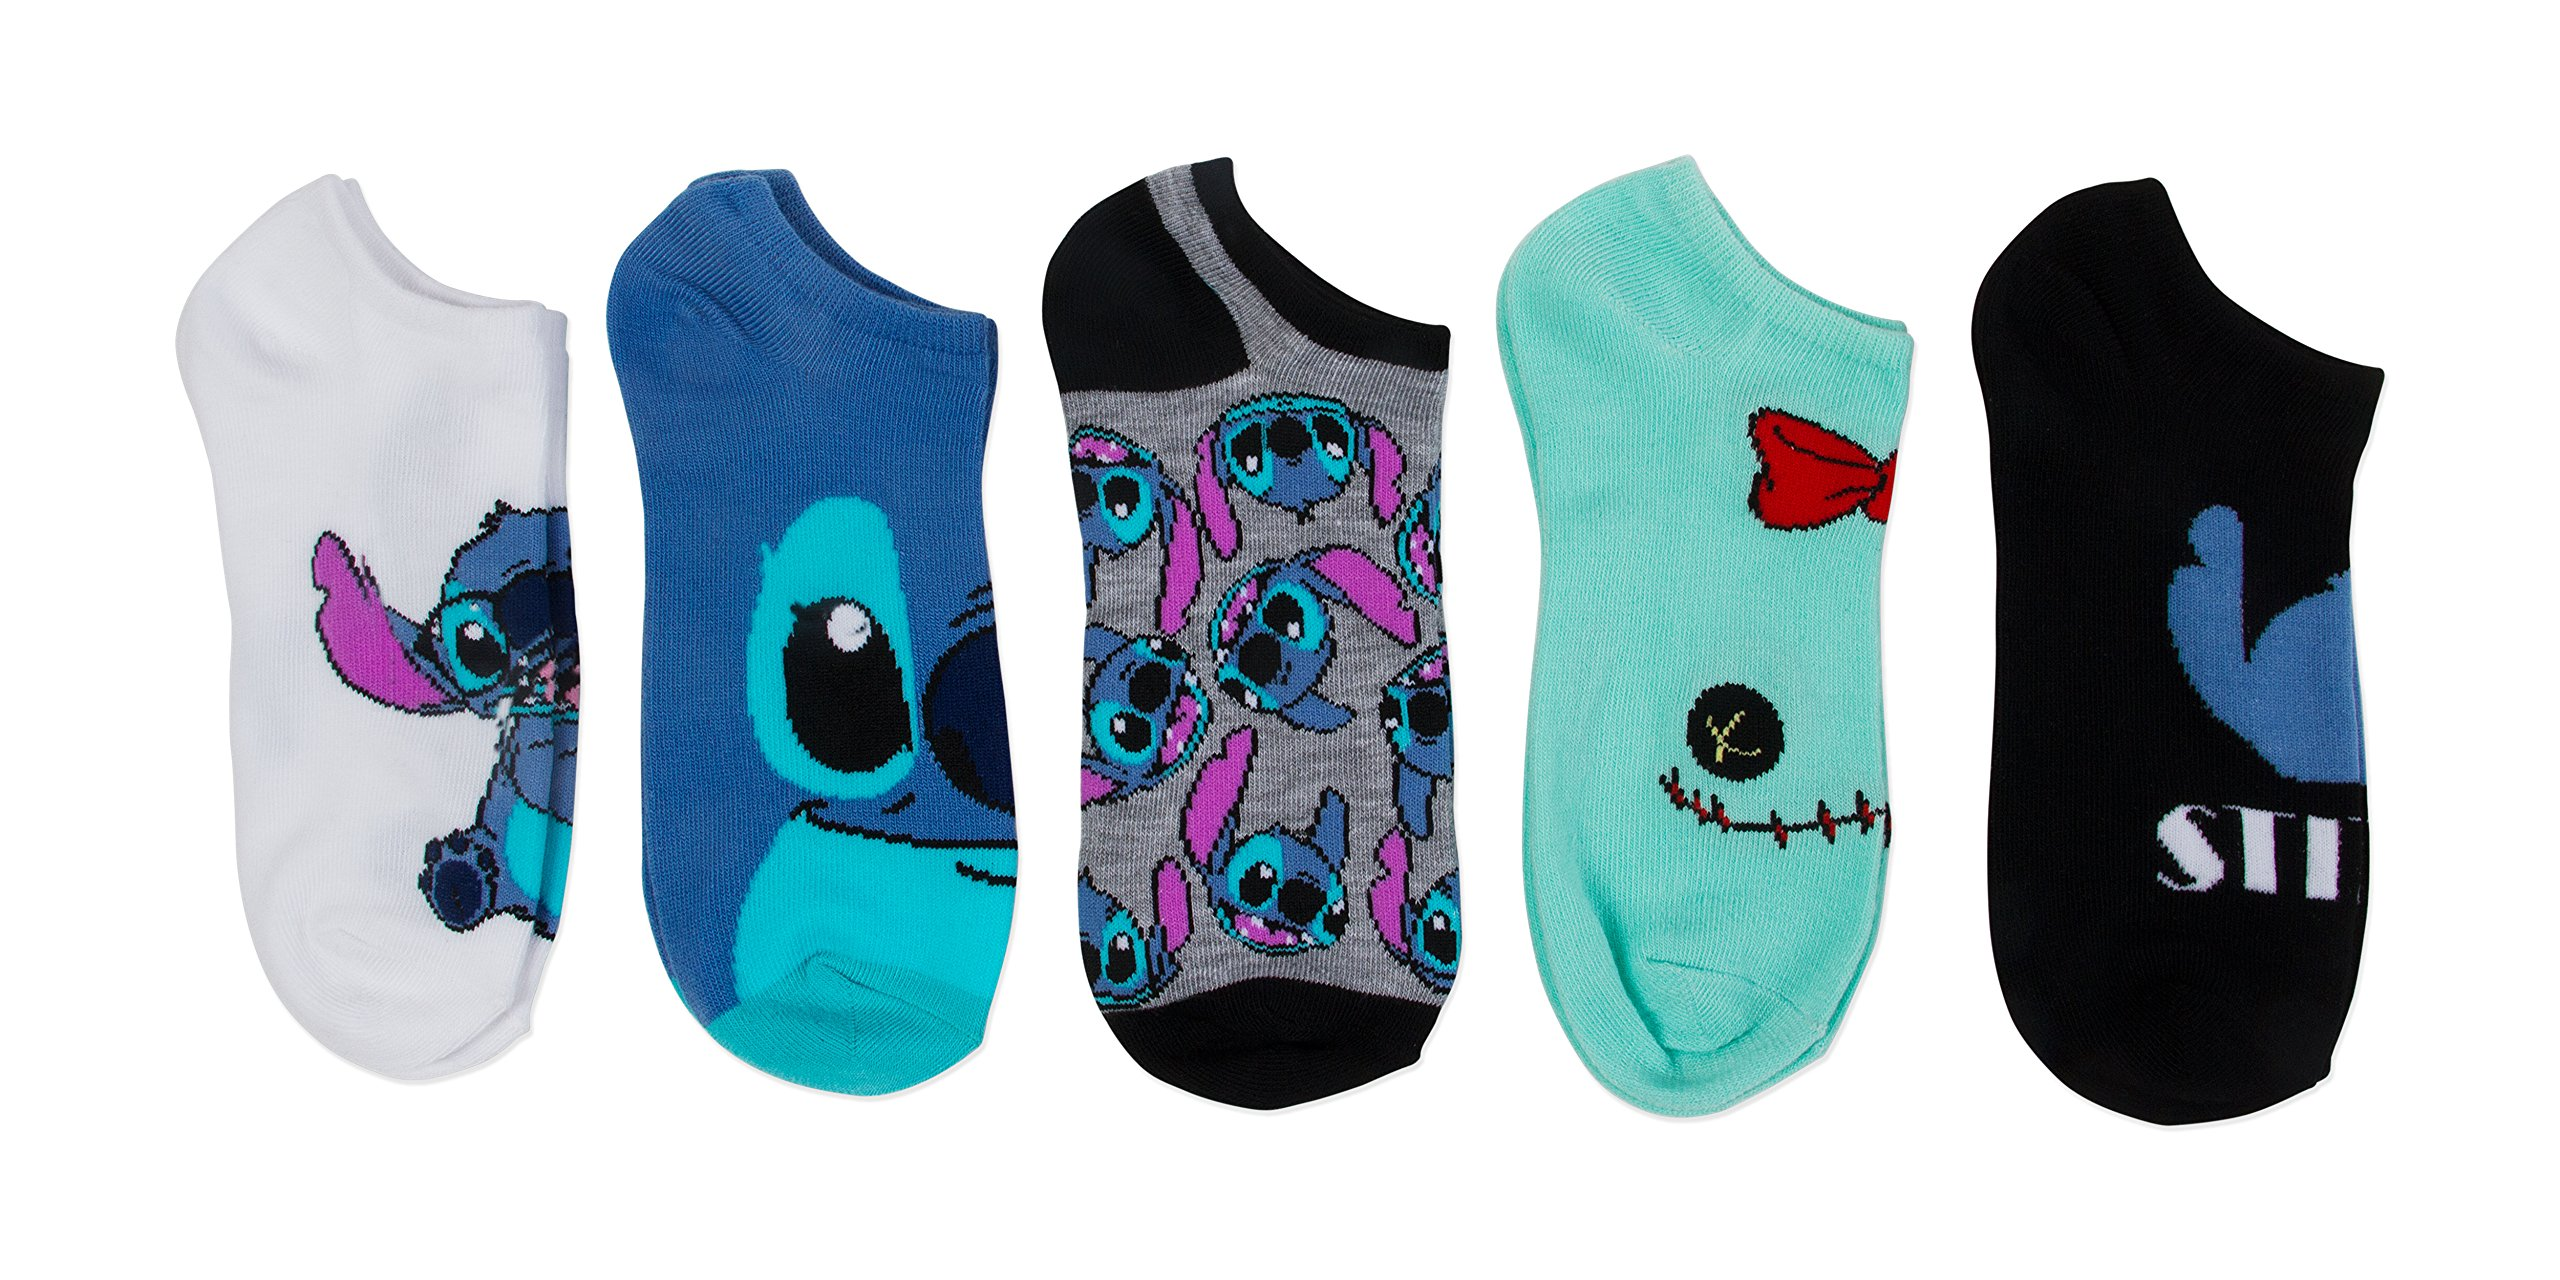 Disney Women's Lilo and Stitch 5 Pack No Show, Assorted Blue, fits Sock Size 9-11 fits Shoe Size 4-10.5